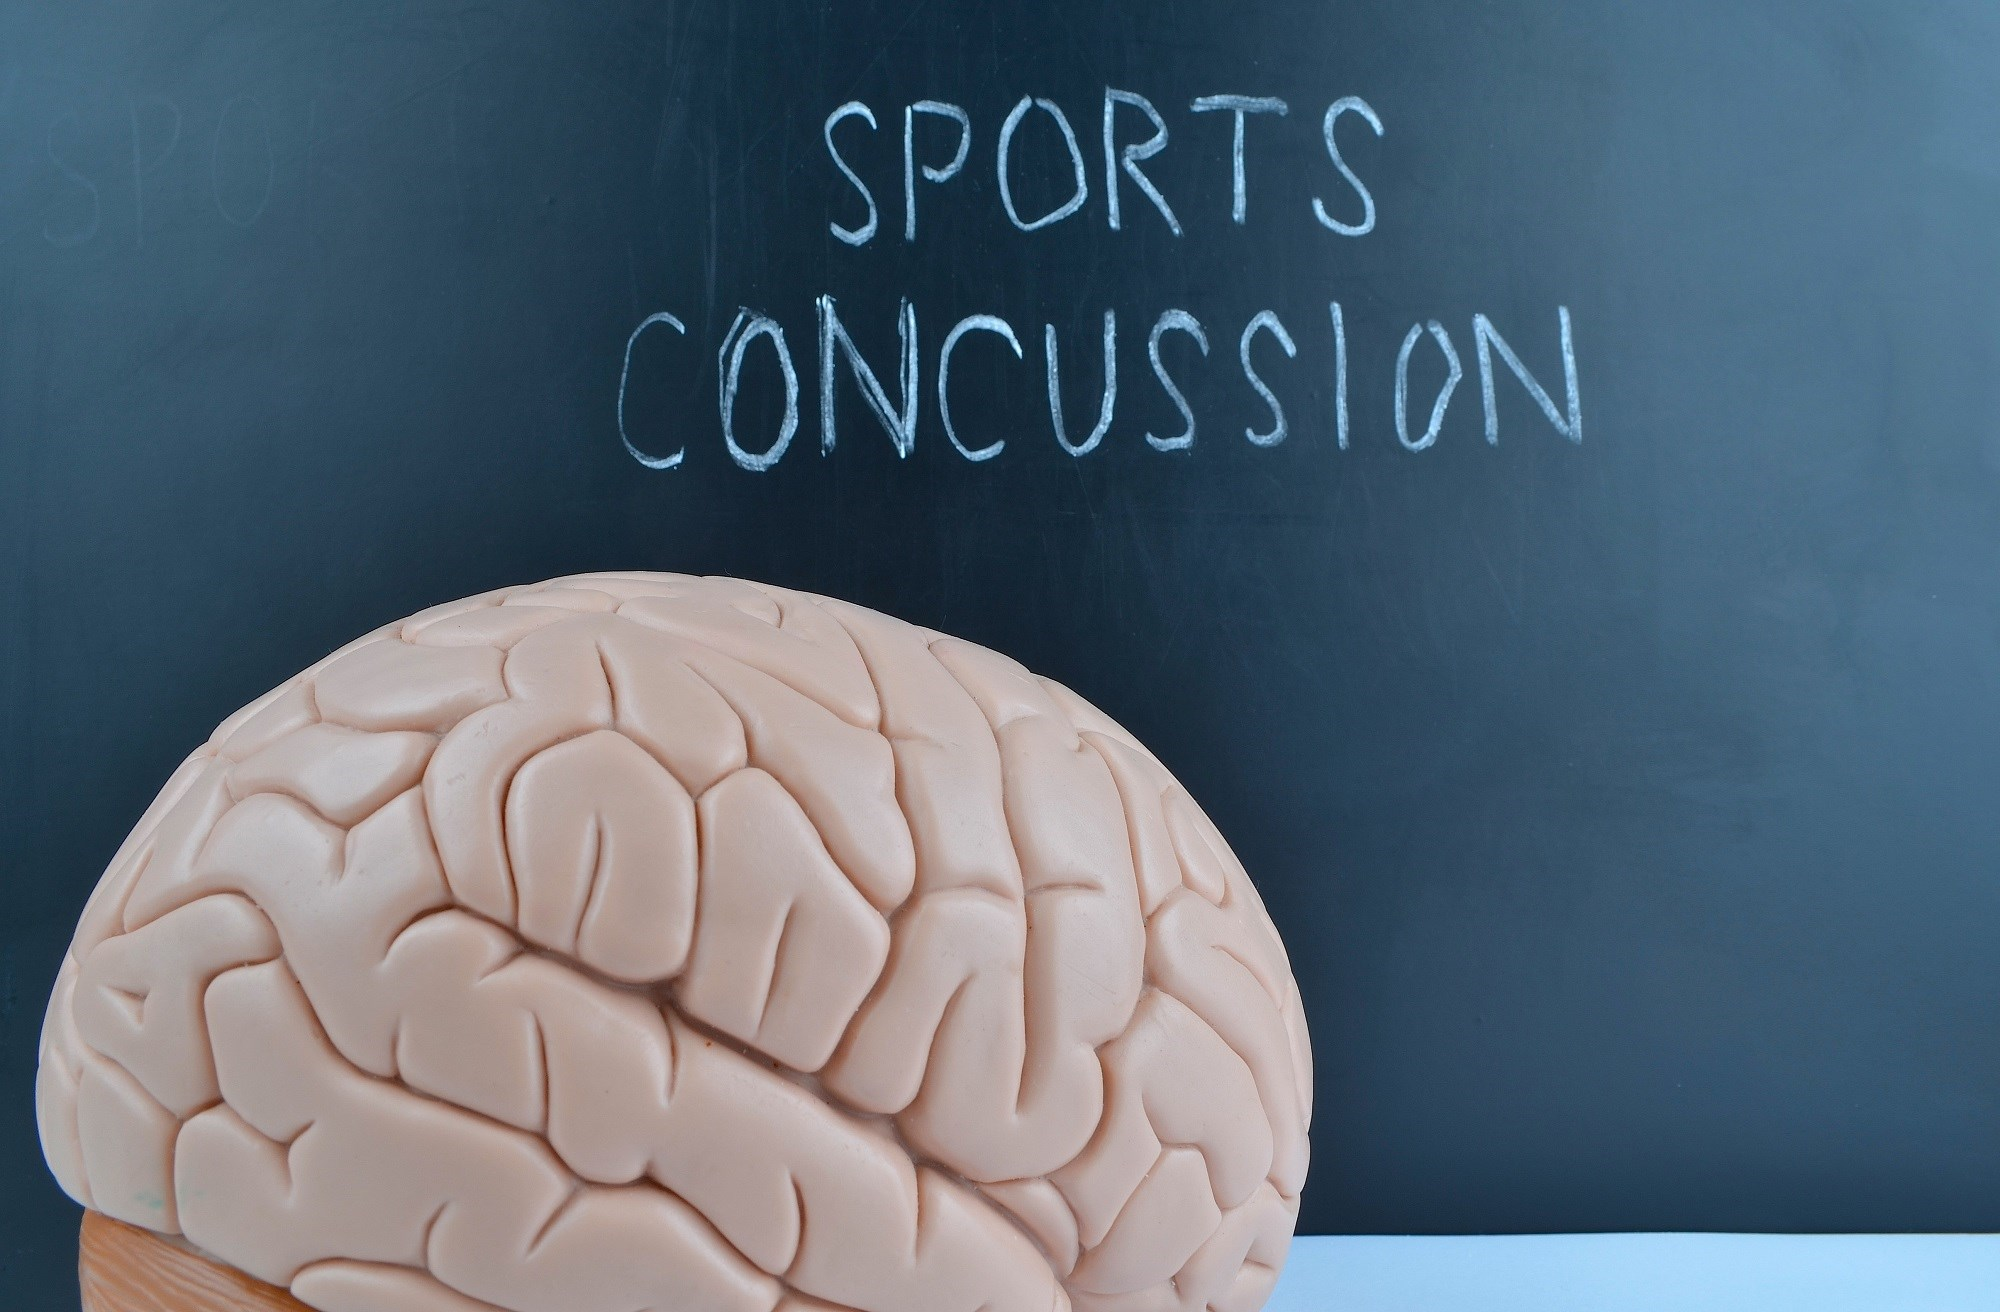 Sports related concussion may result in neuropathological changes but acute clinical signs and symptoms reflect functional disturbance rather than structural injury.